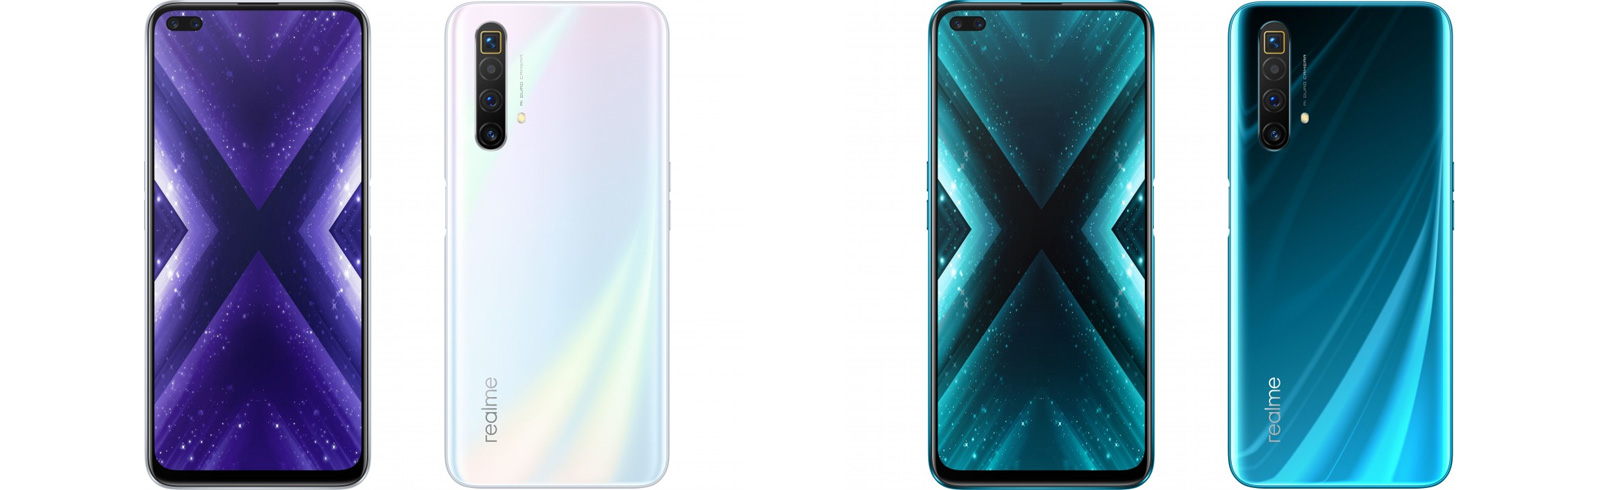 Realme X3 Superzoom And Realme 6s Are Announced Specifications